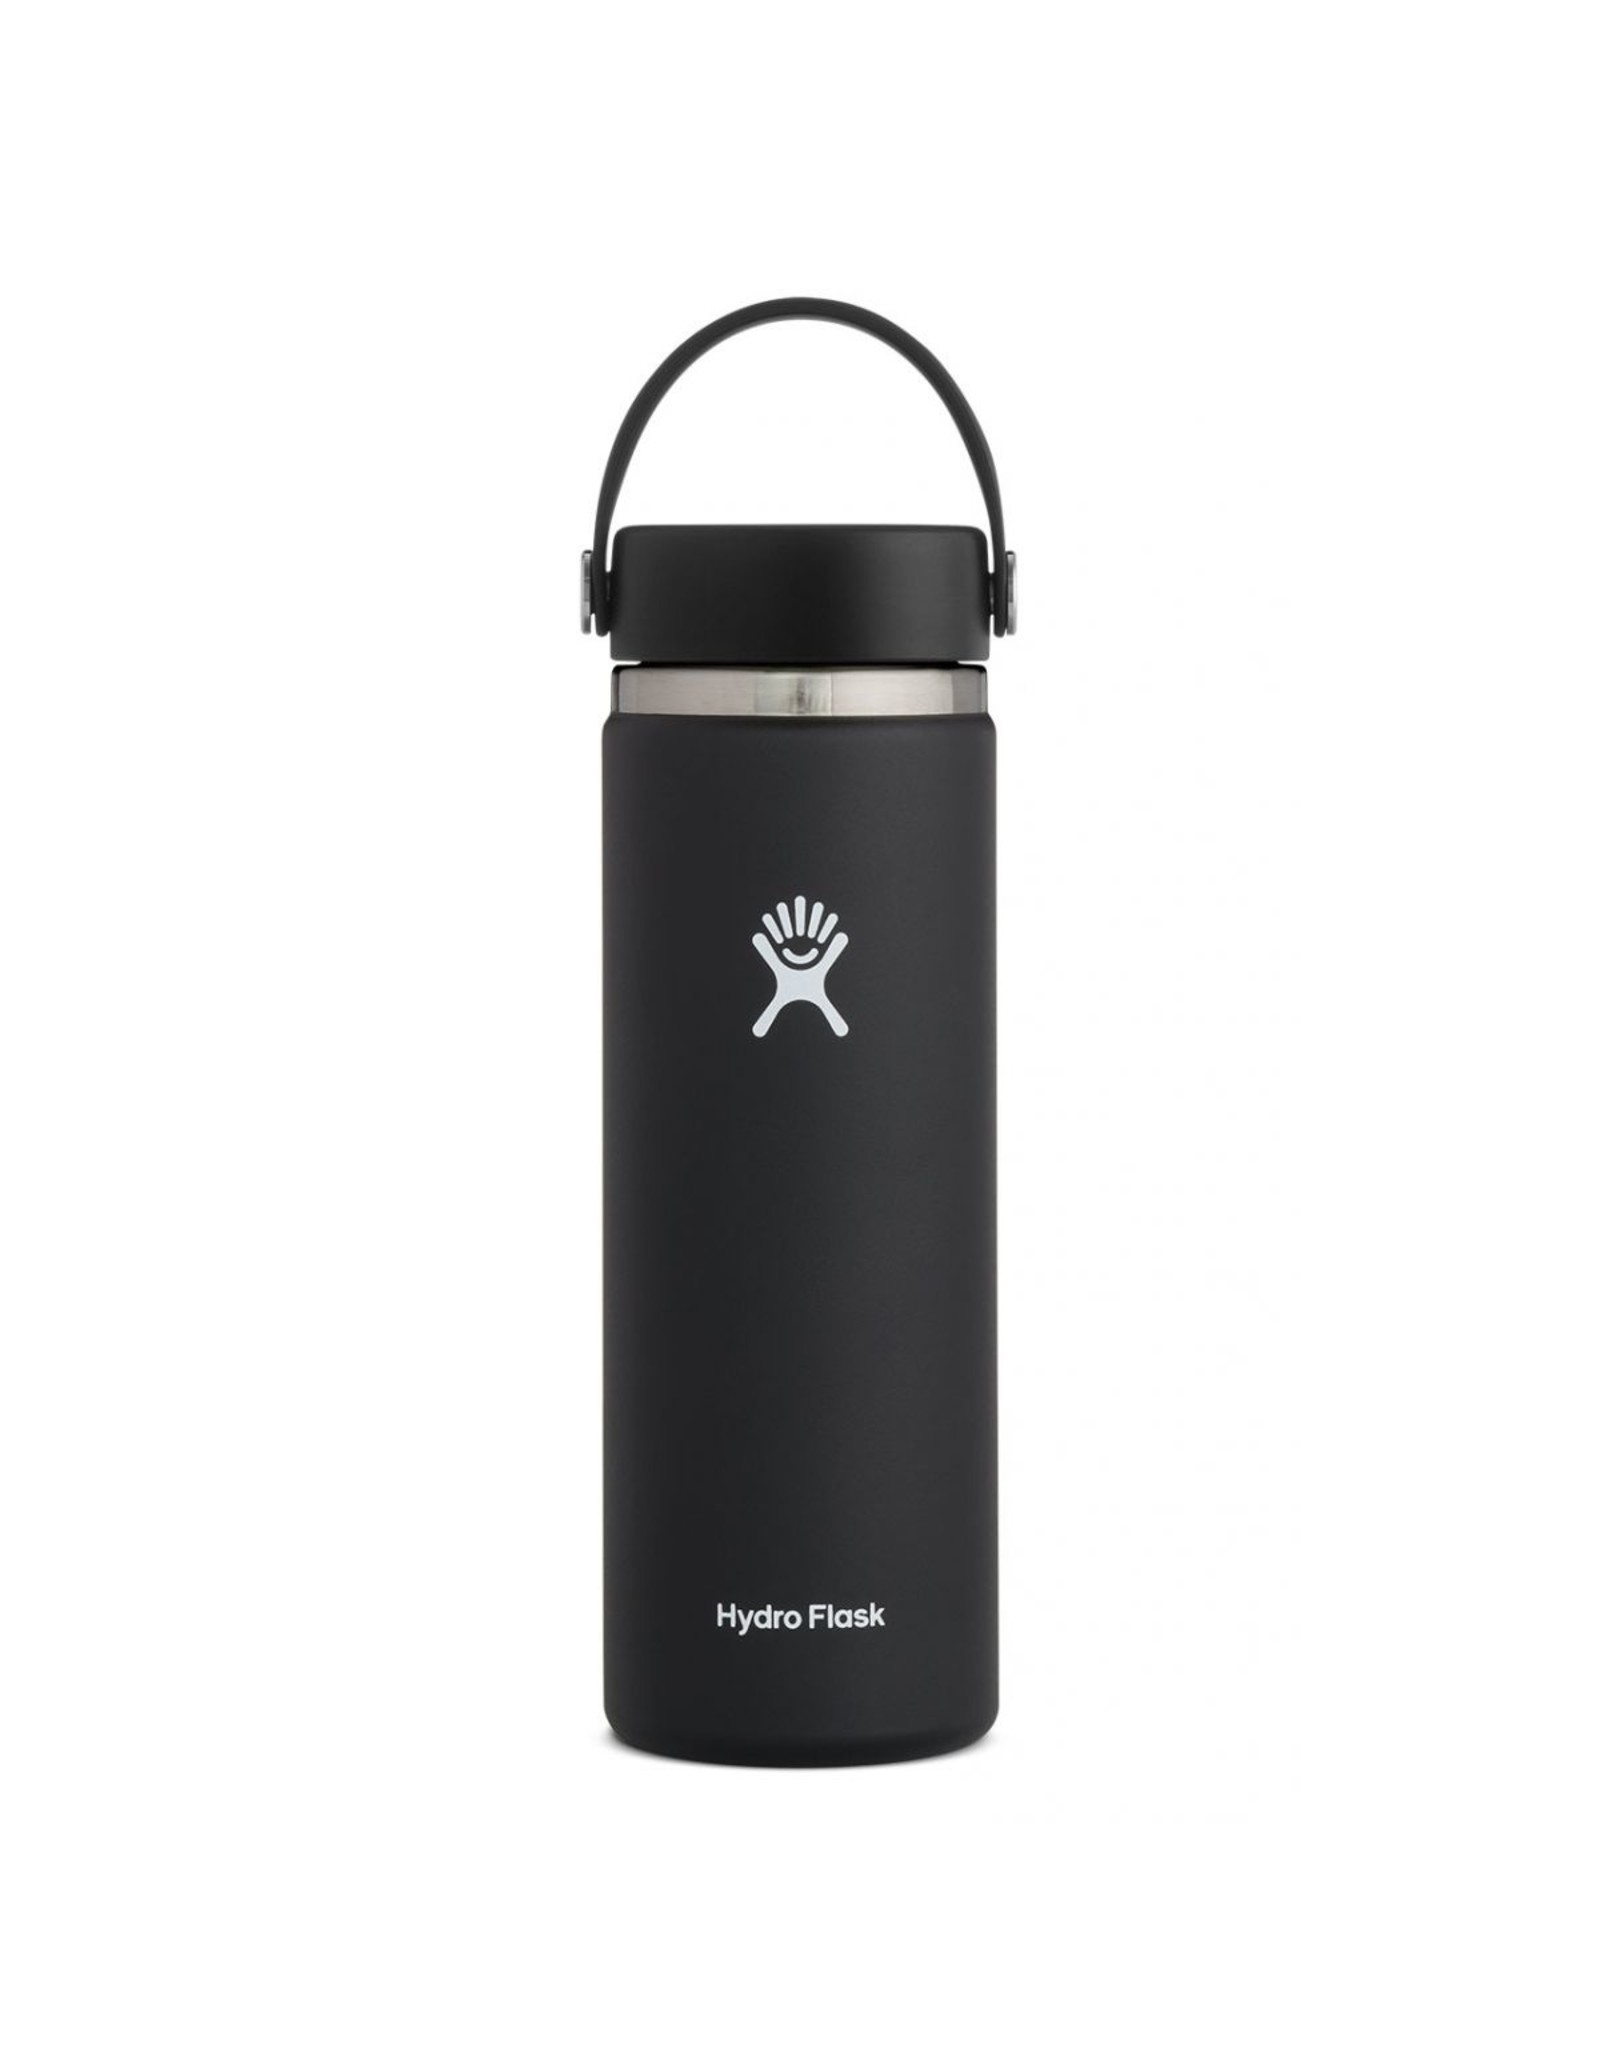 HYDRO FLASK 20 OZ WIDE MOUTH INSULATED BOTTLE